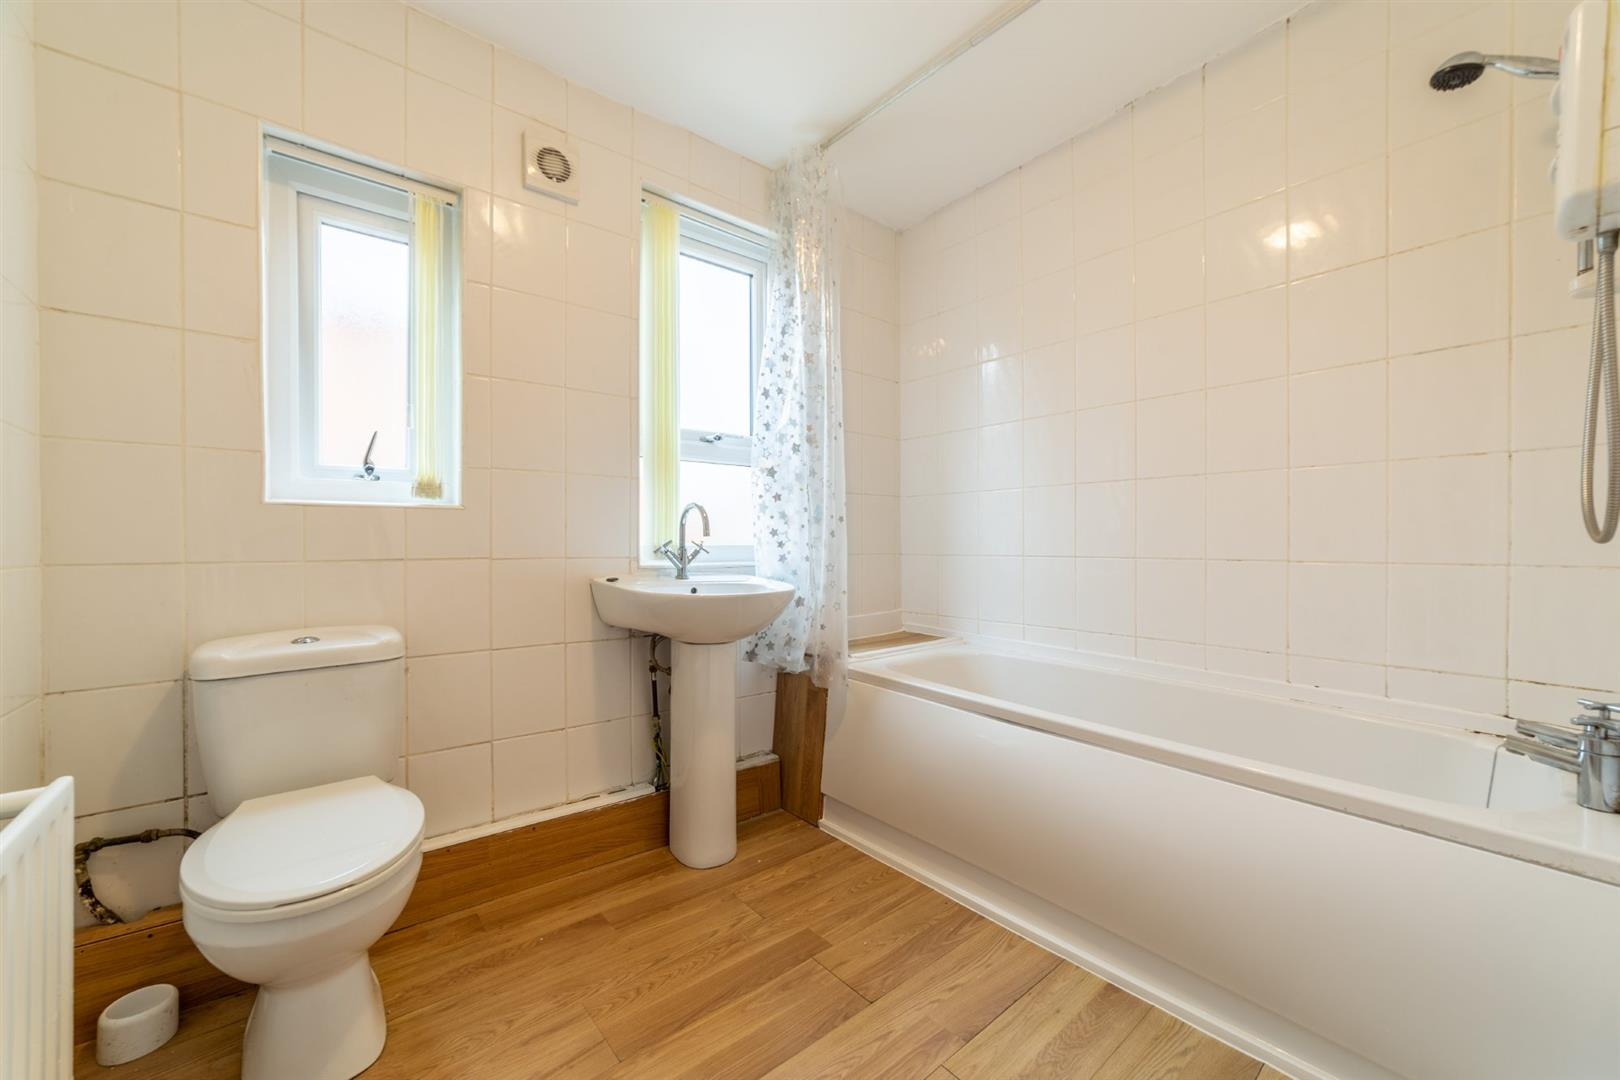 3 bed flat to rent in Newcastle Upon Tyne, NE2 2JS  - Property Image 8